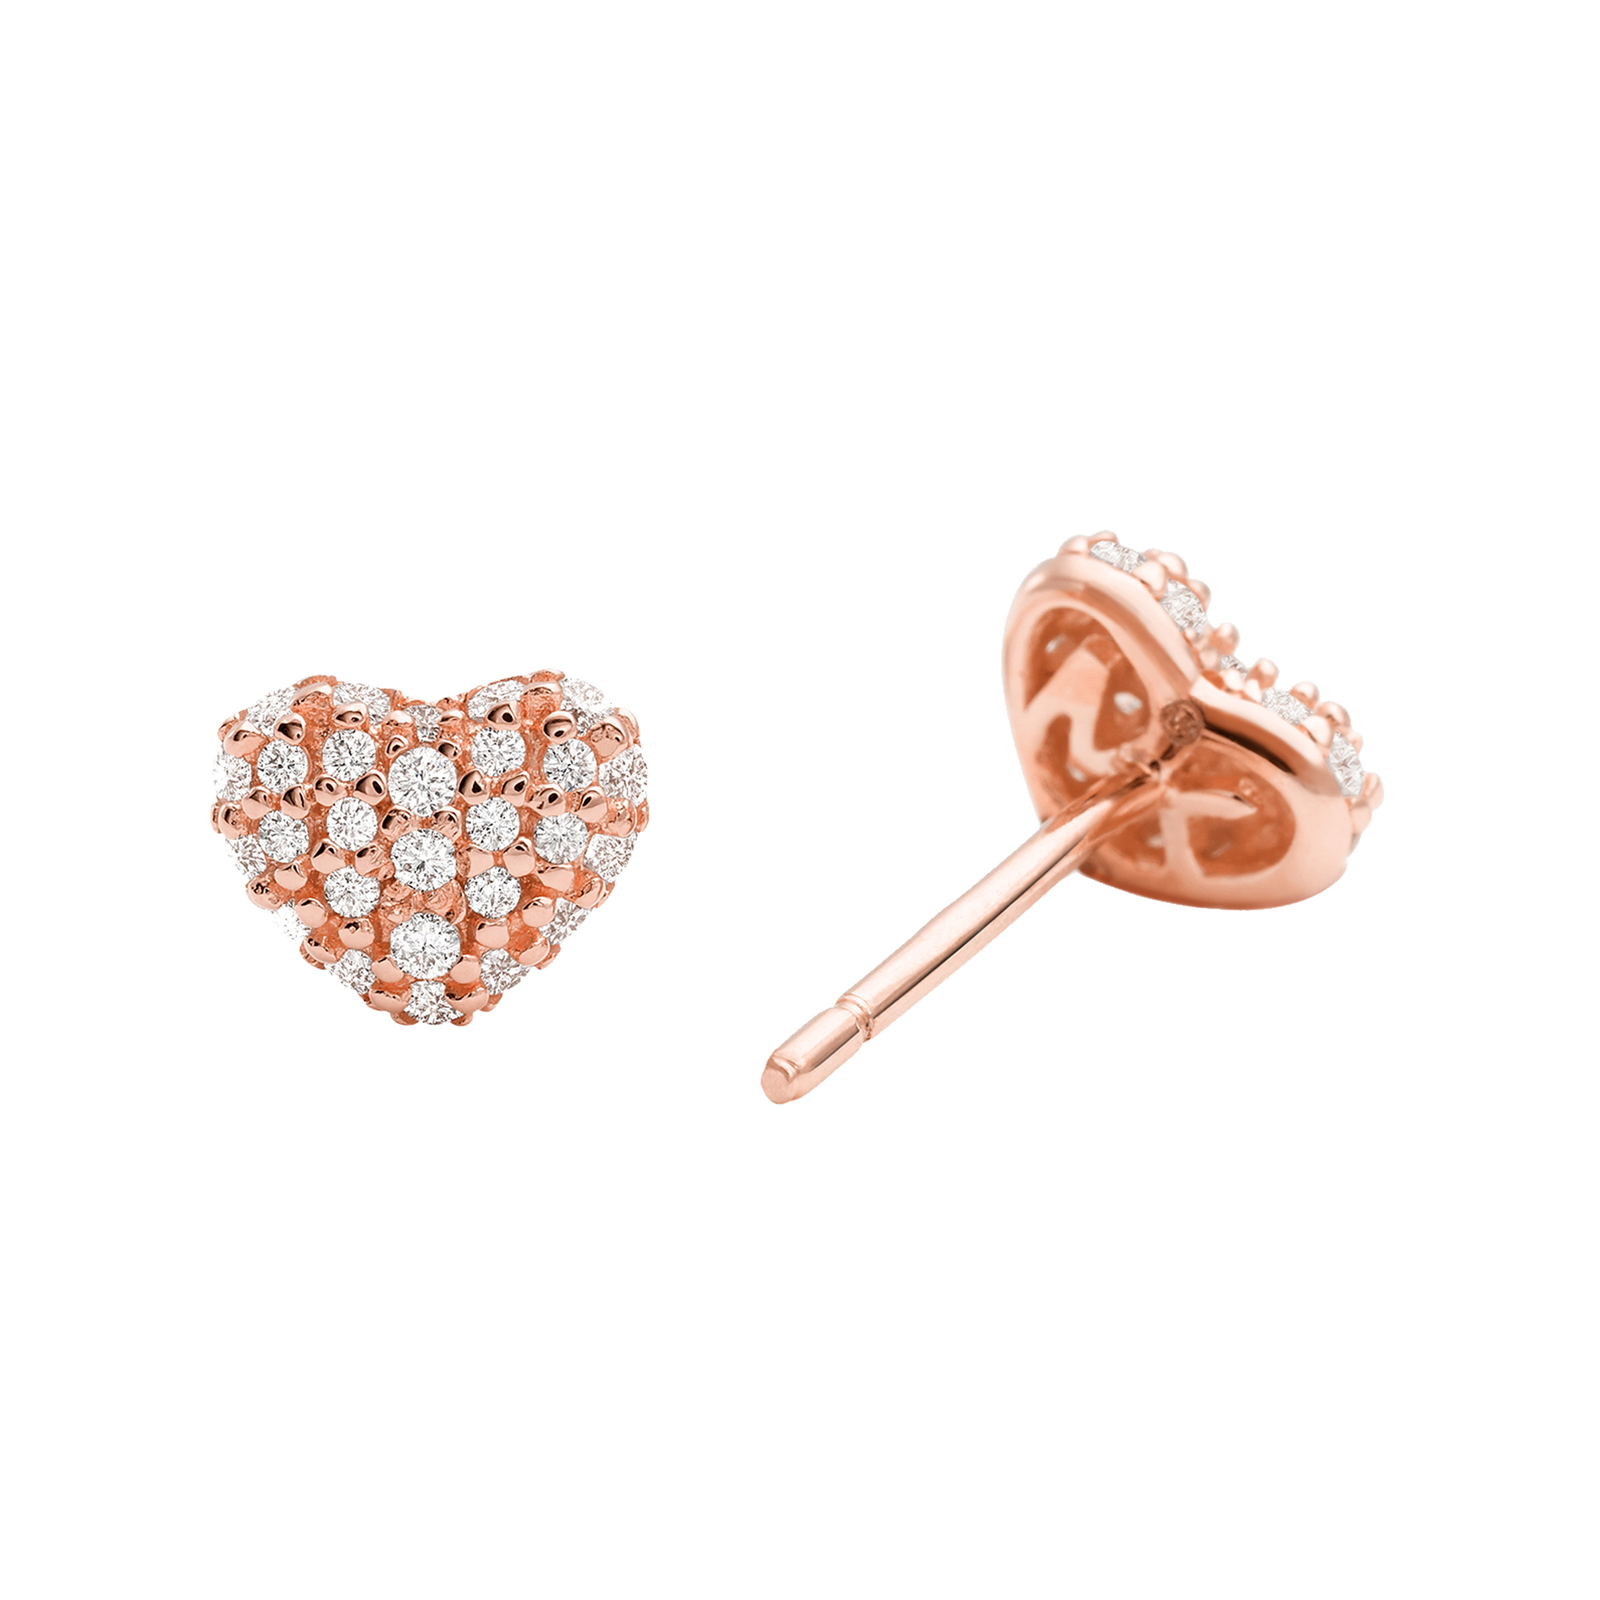 318169a3bf5f9 Michael Kors Pave 14ct Rose Gold Plated Heart Stud Earrings ...